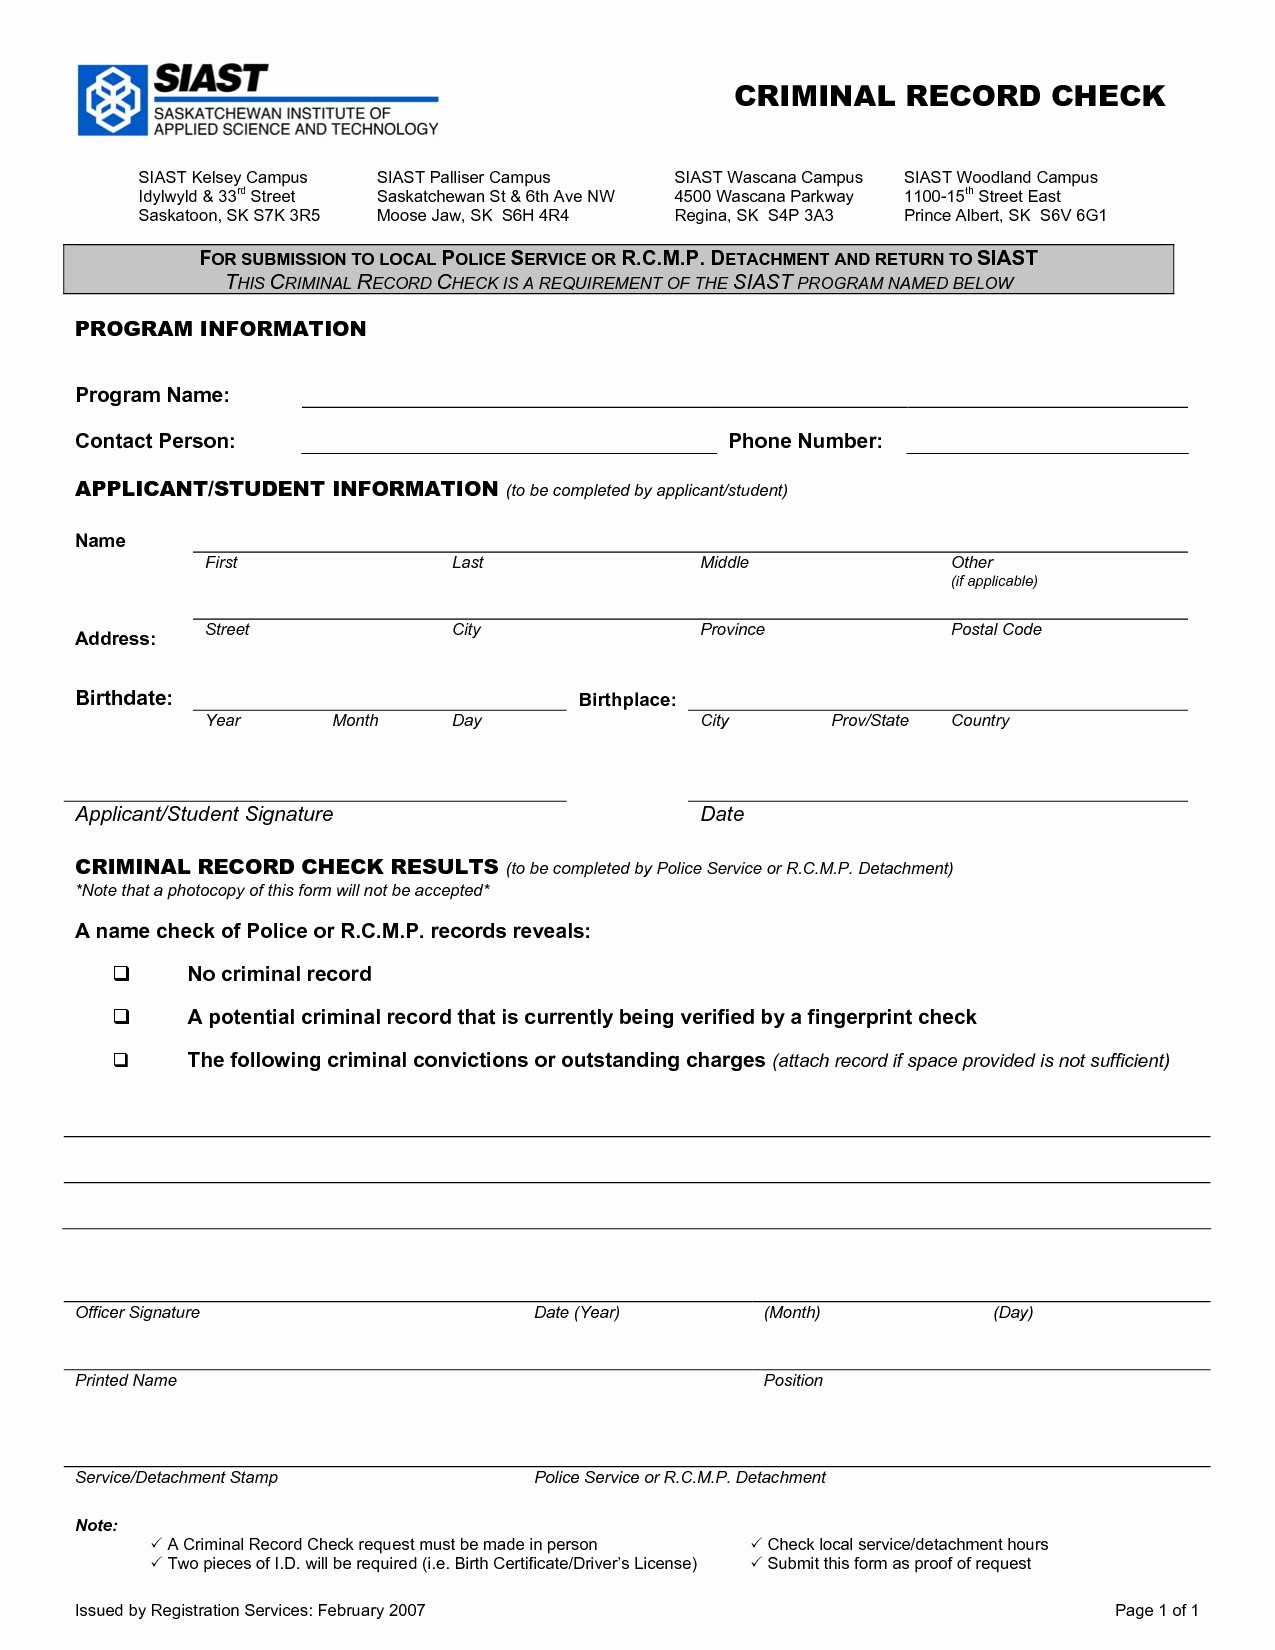 Background Check form Template Free Inspirational Pin by Honey Boobear On Fitness Guide